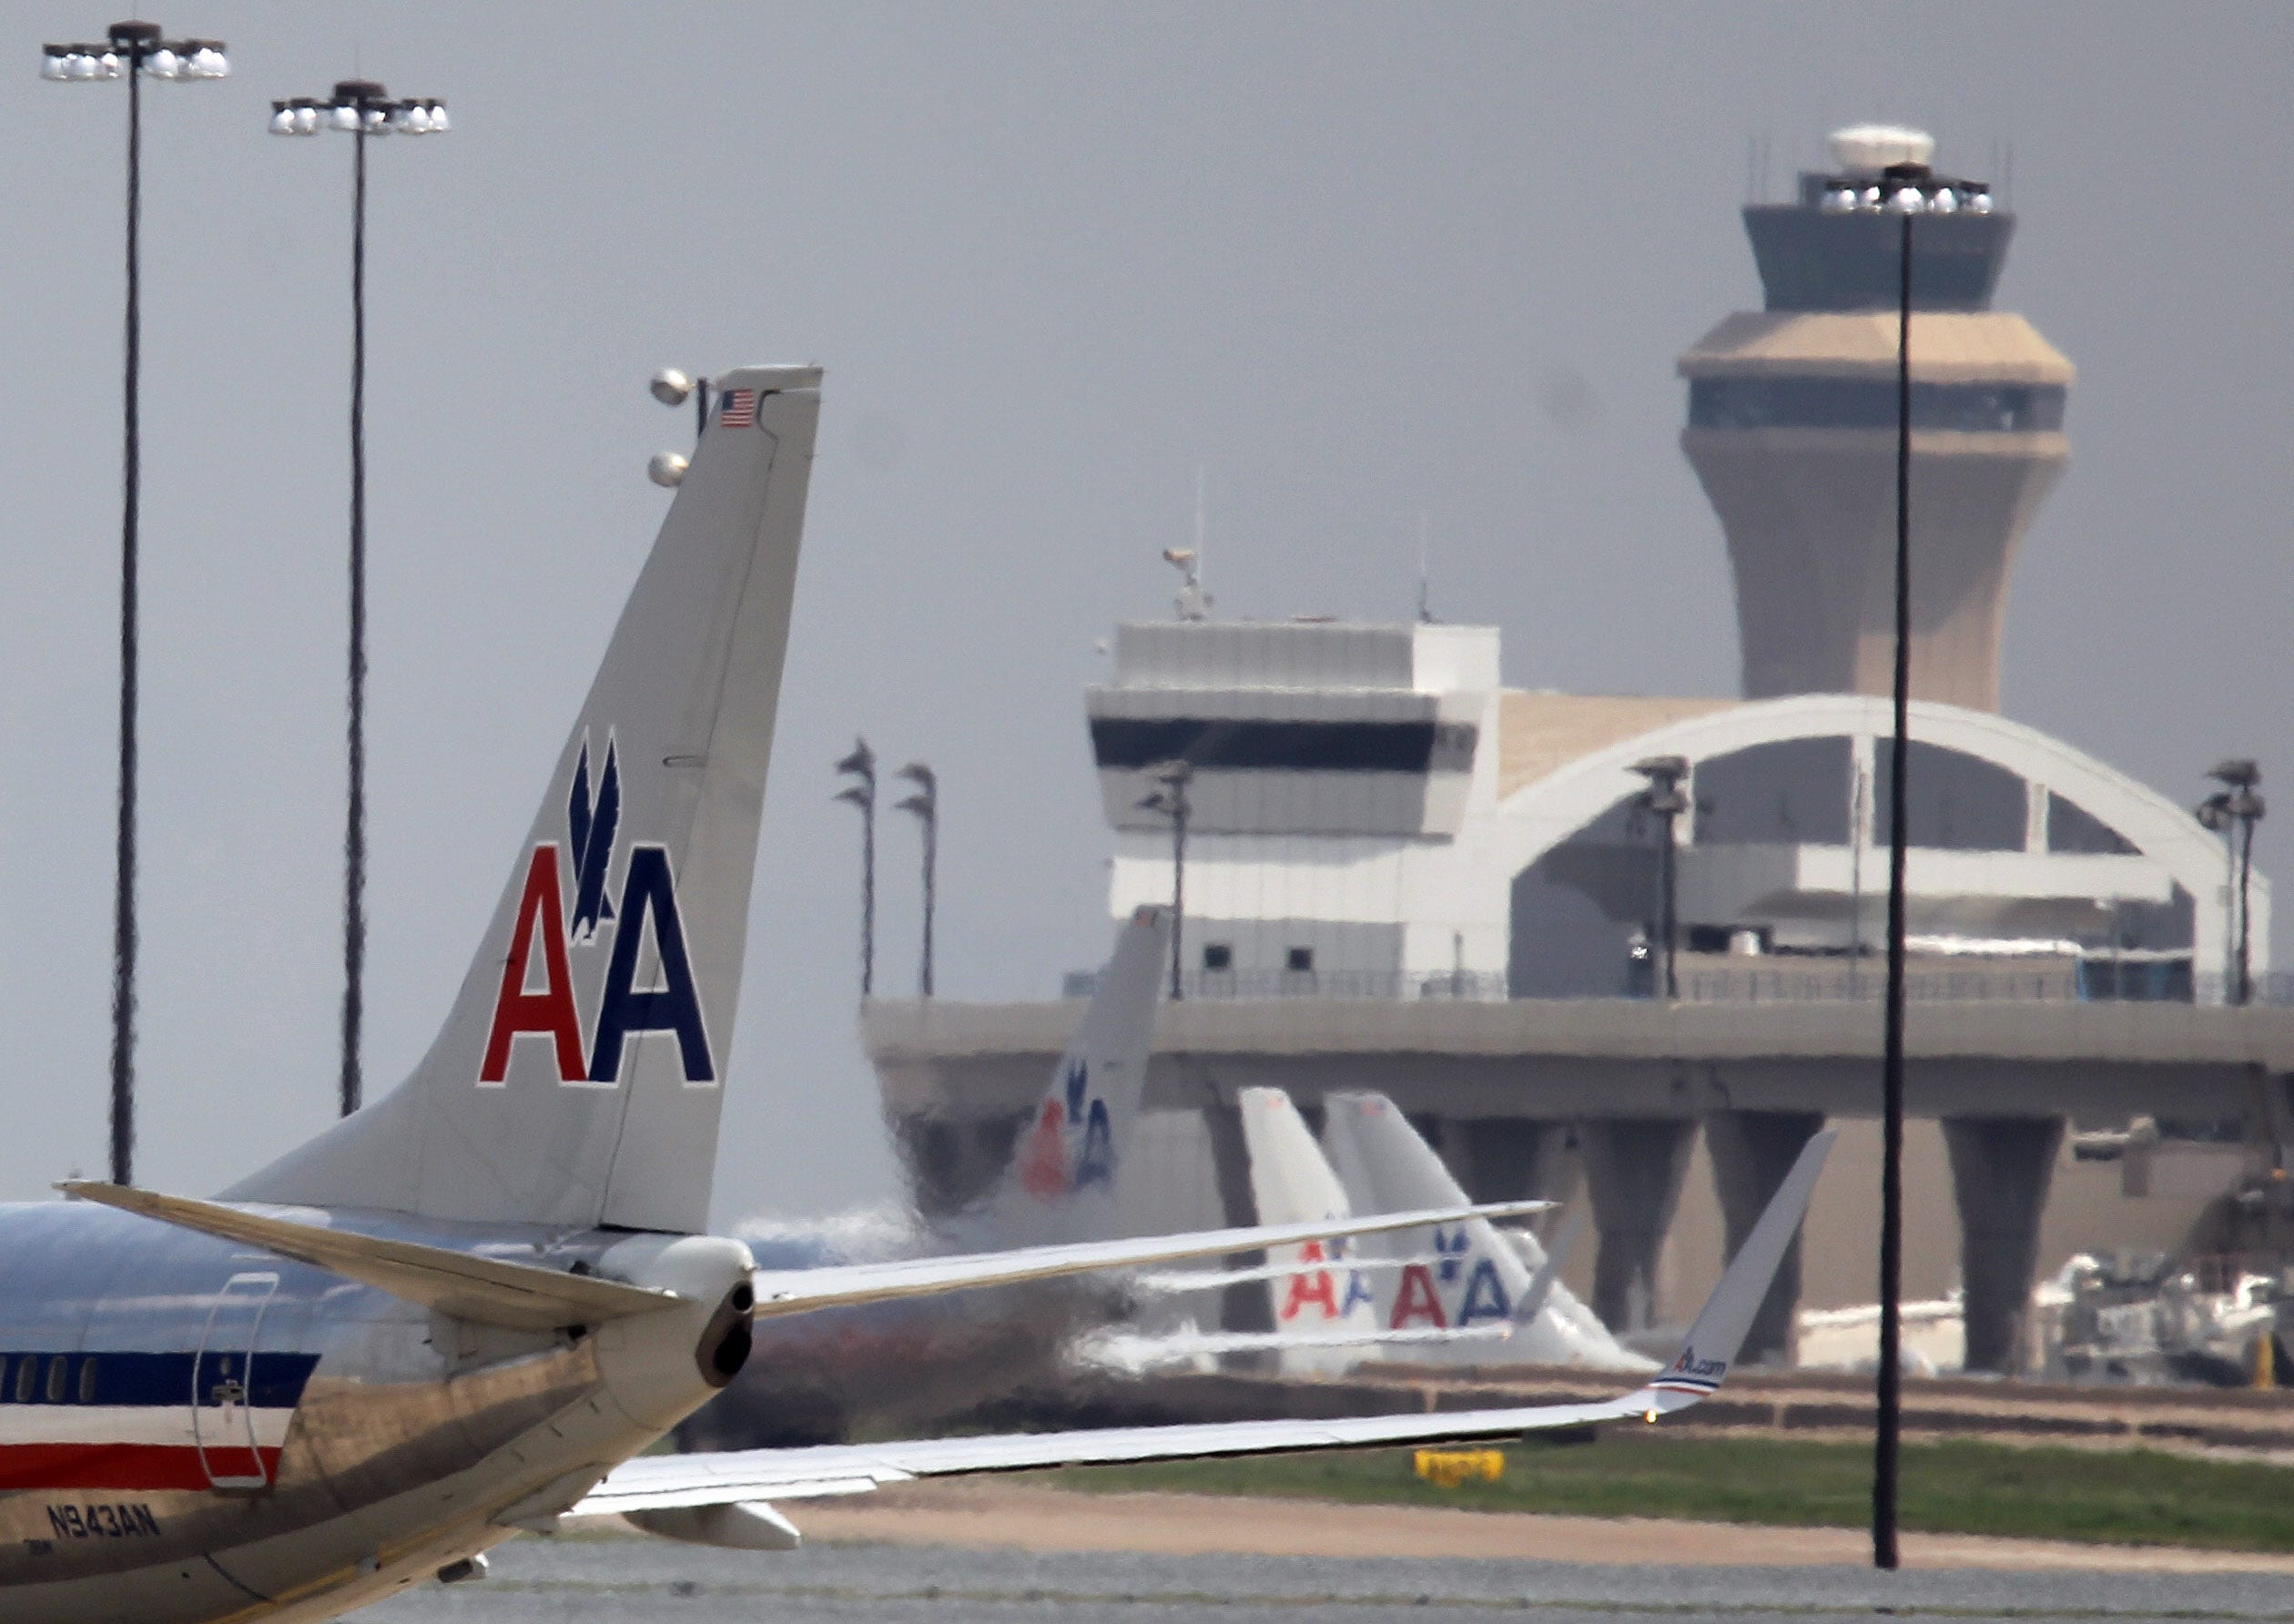 Flights into Dallas halted after reports of smoke at FAA facility